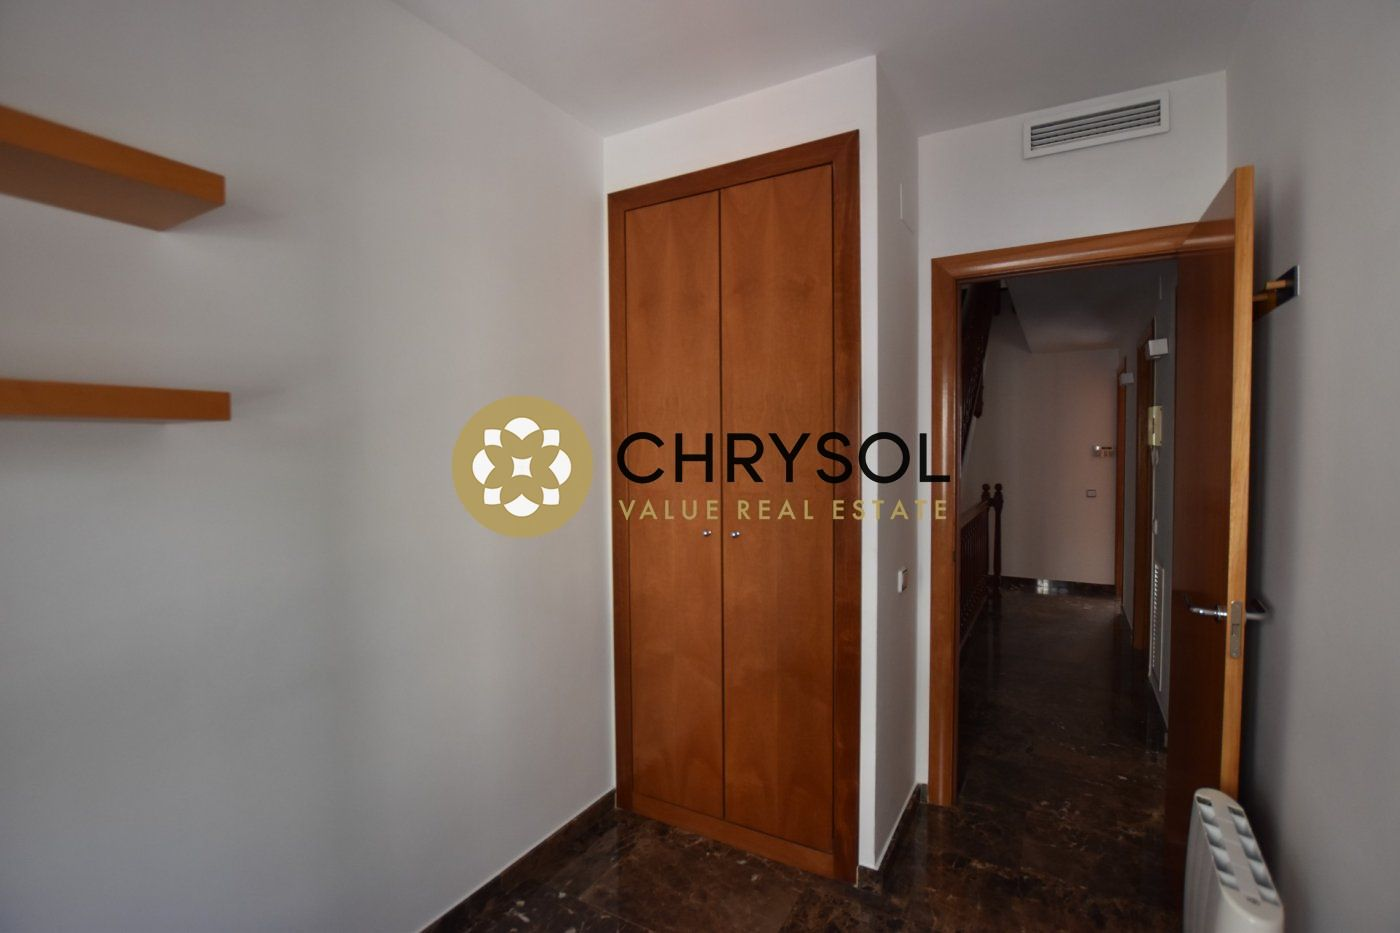 Photogallery - 32 - Chrysol Value